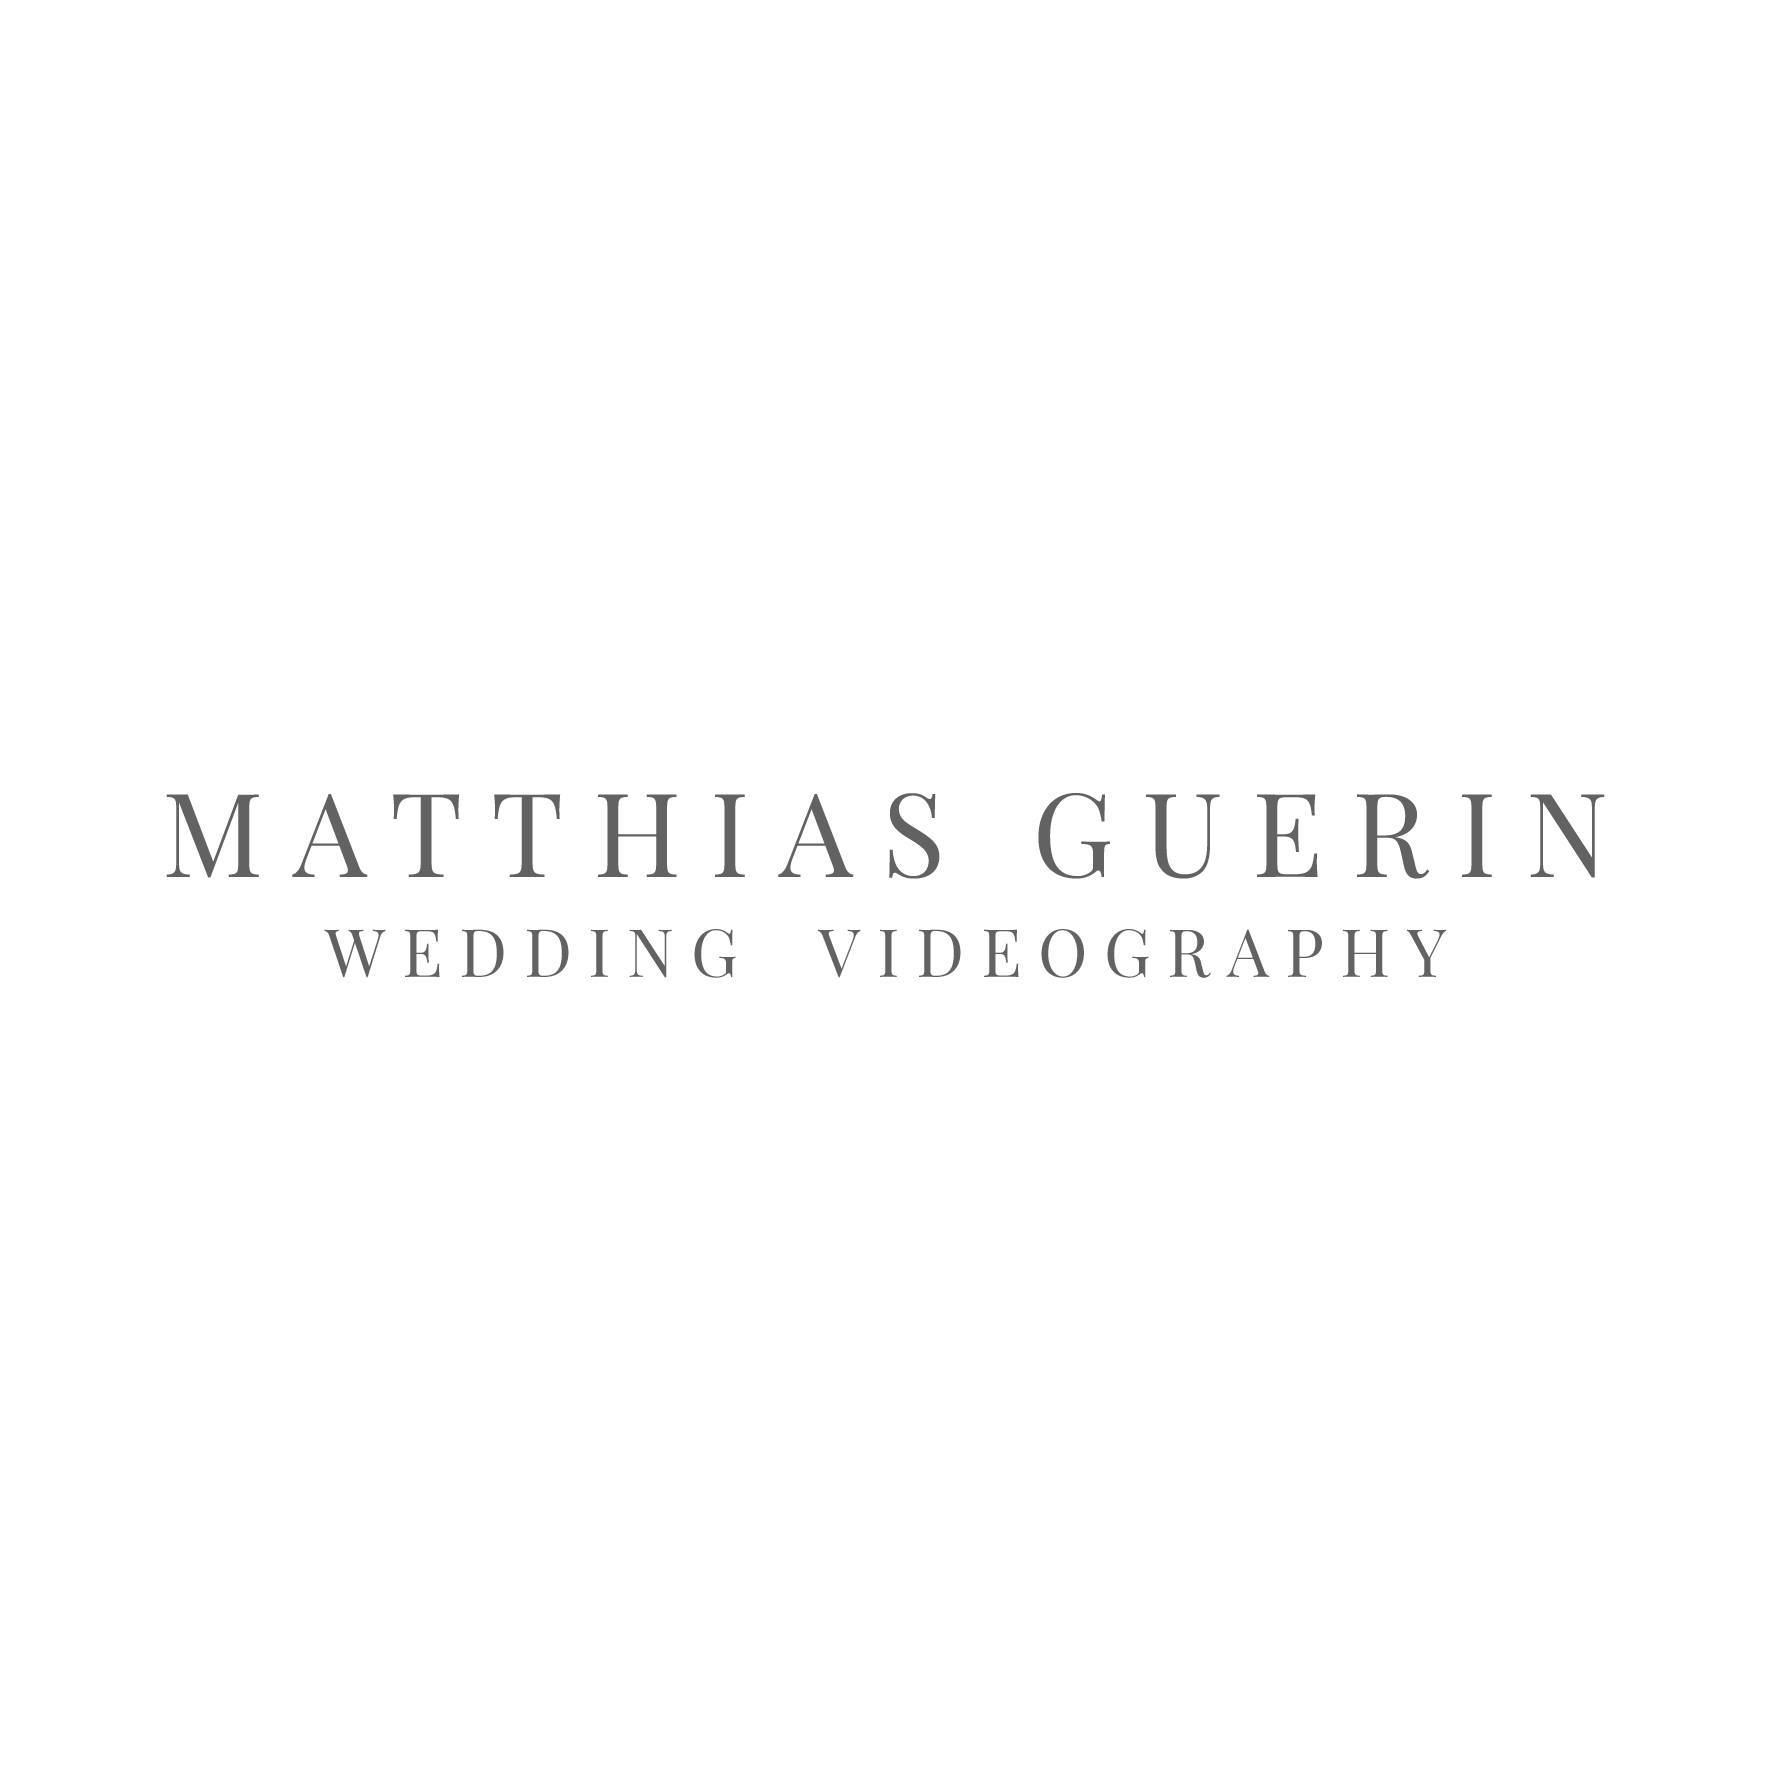 Matthias Guerin wedding videography